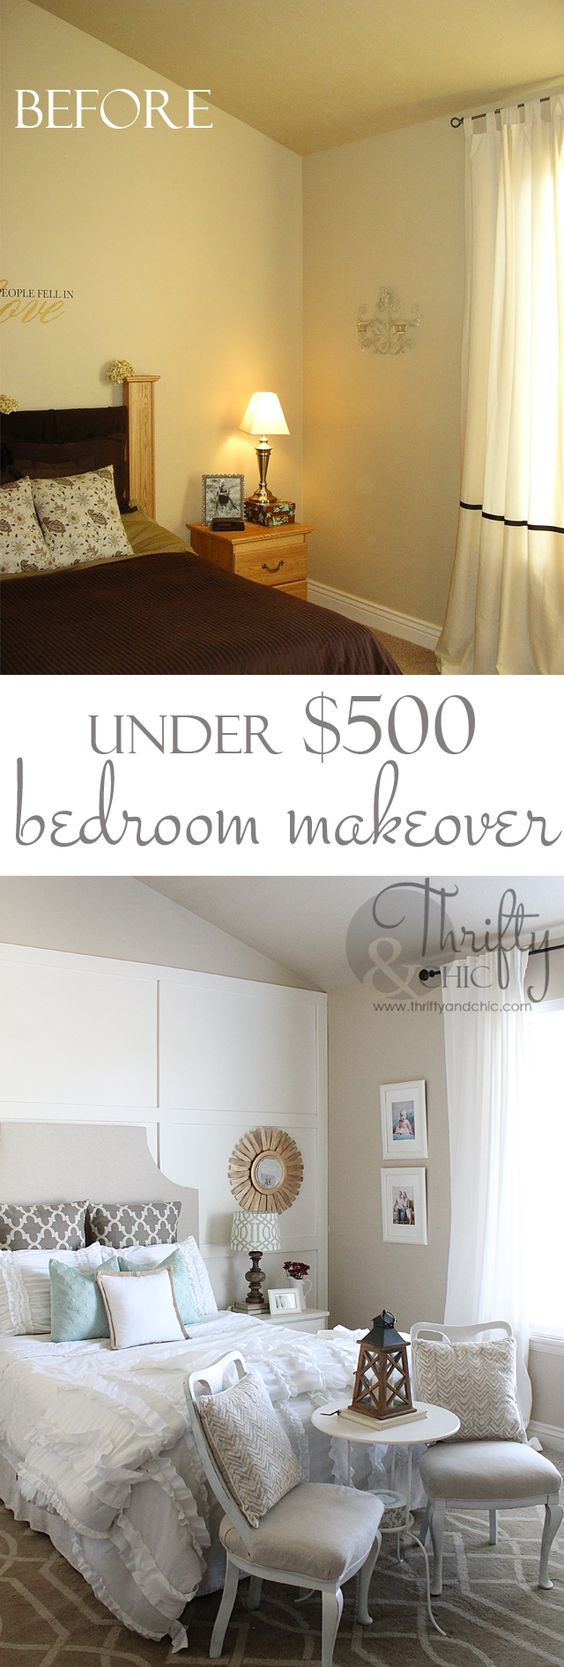 Master Bedroom Makeover 17 Best Ideas About Master Bedroom Makeover On Pinterest Master